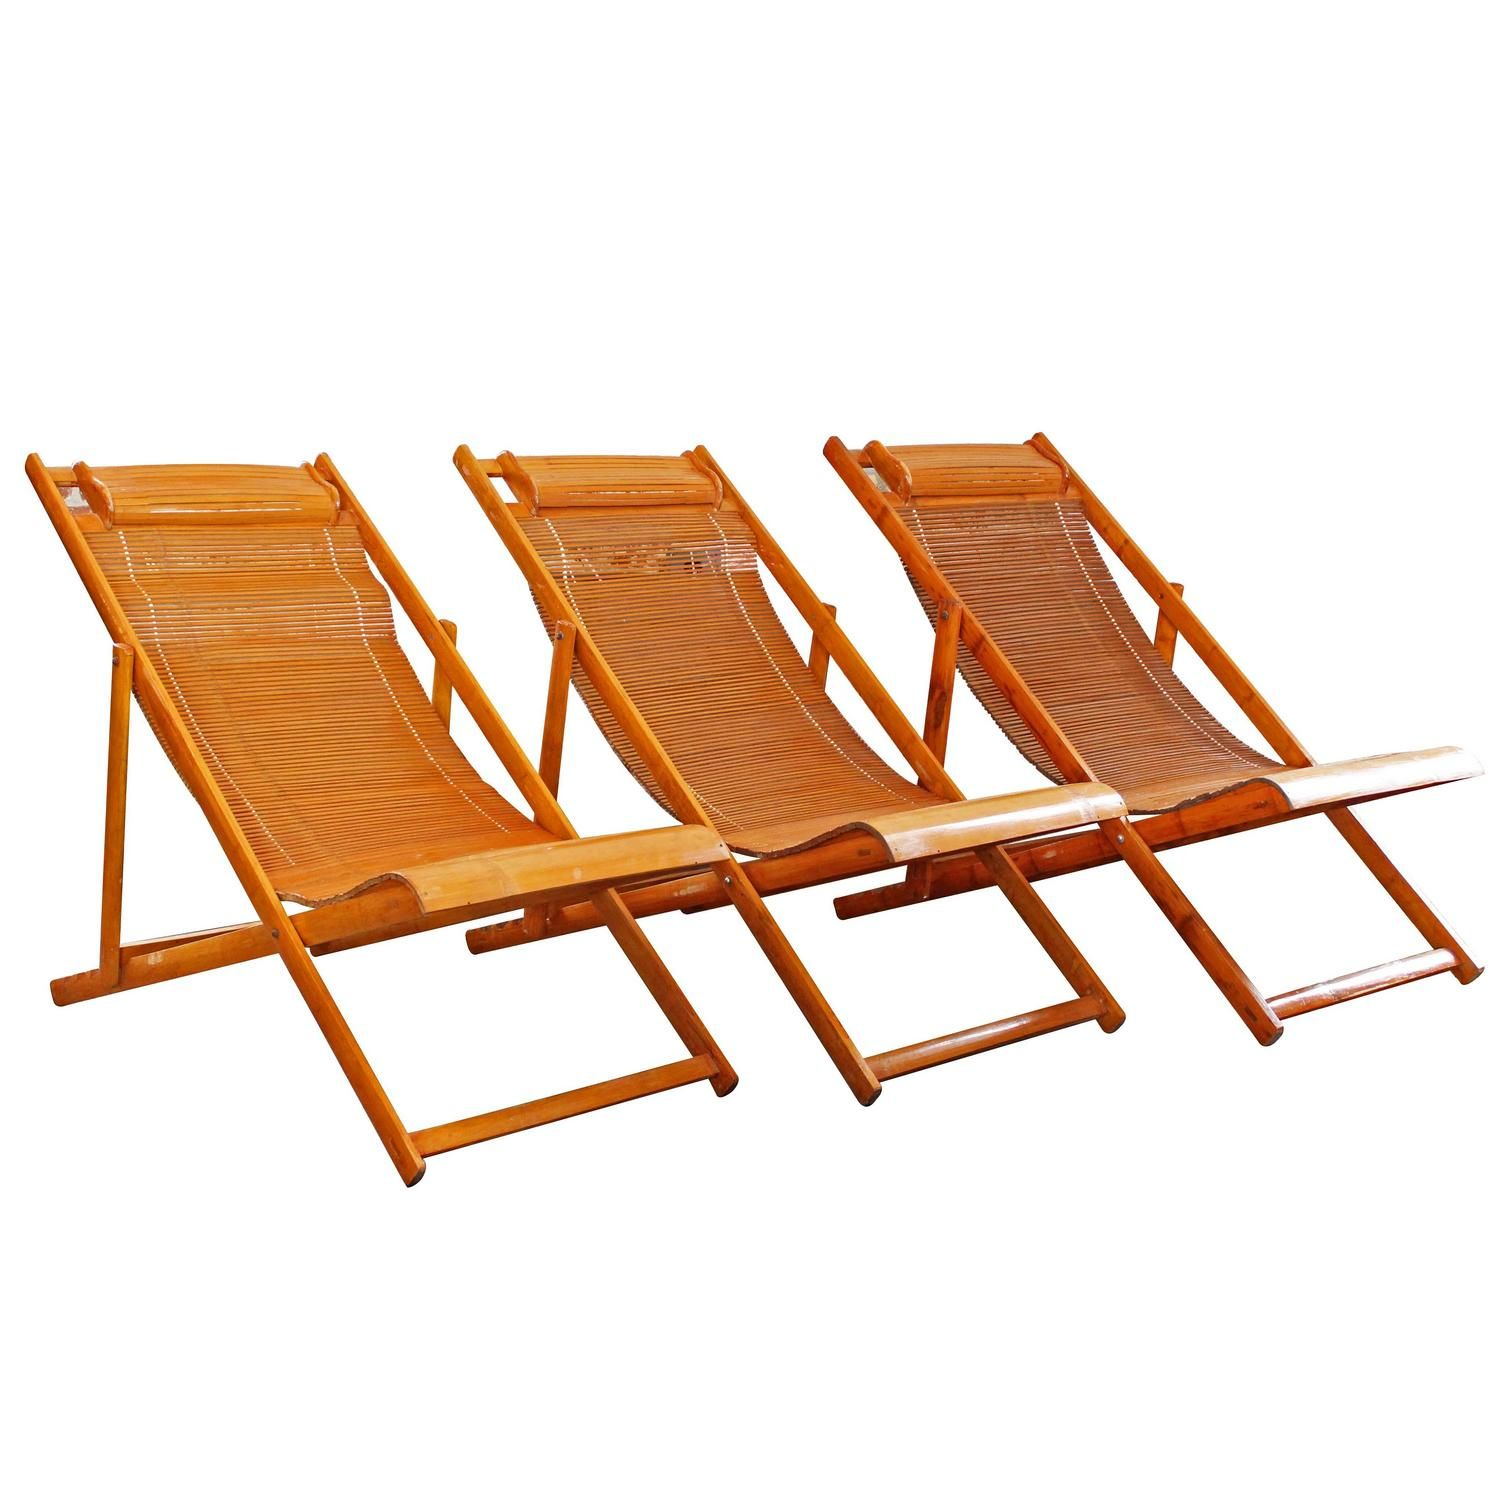 Vintage Bamboo Wood Japanese Deck Chairs Outdoor Fold Up Lounge Chairs From A Unique Collection Of Antique And Deck Chairs Pool Lounge Chairs Bamboo Decking